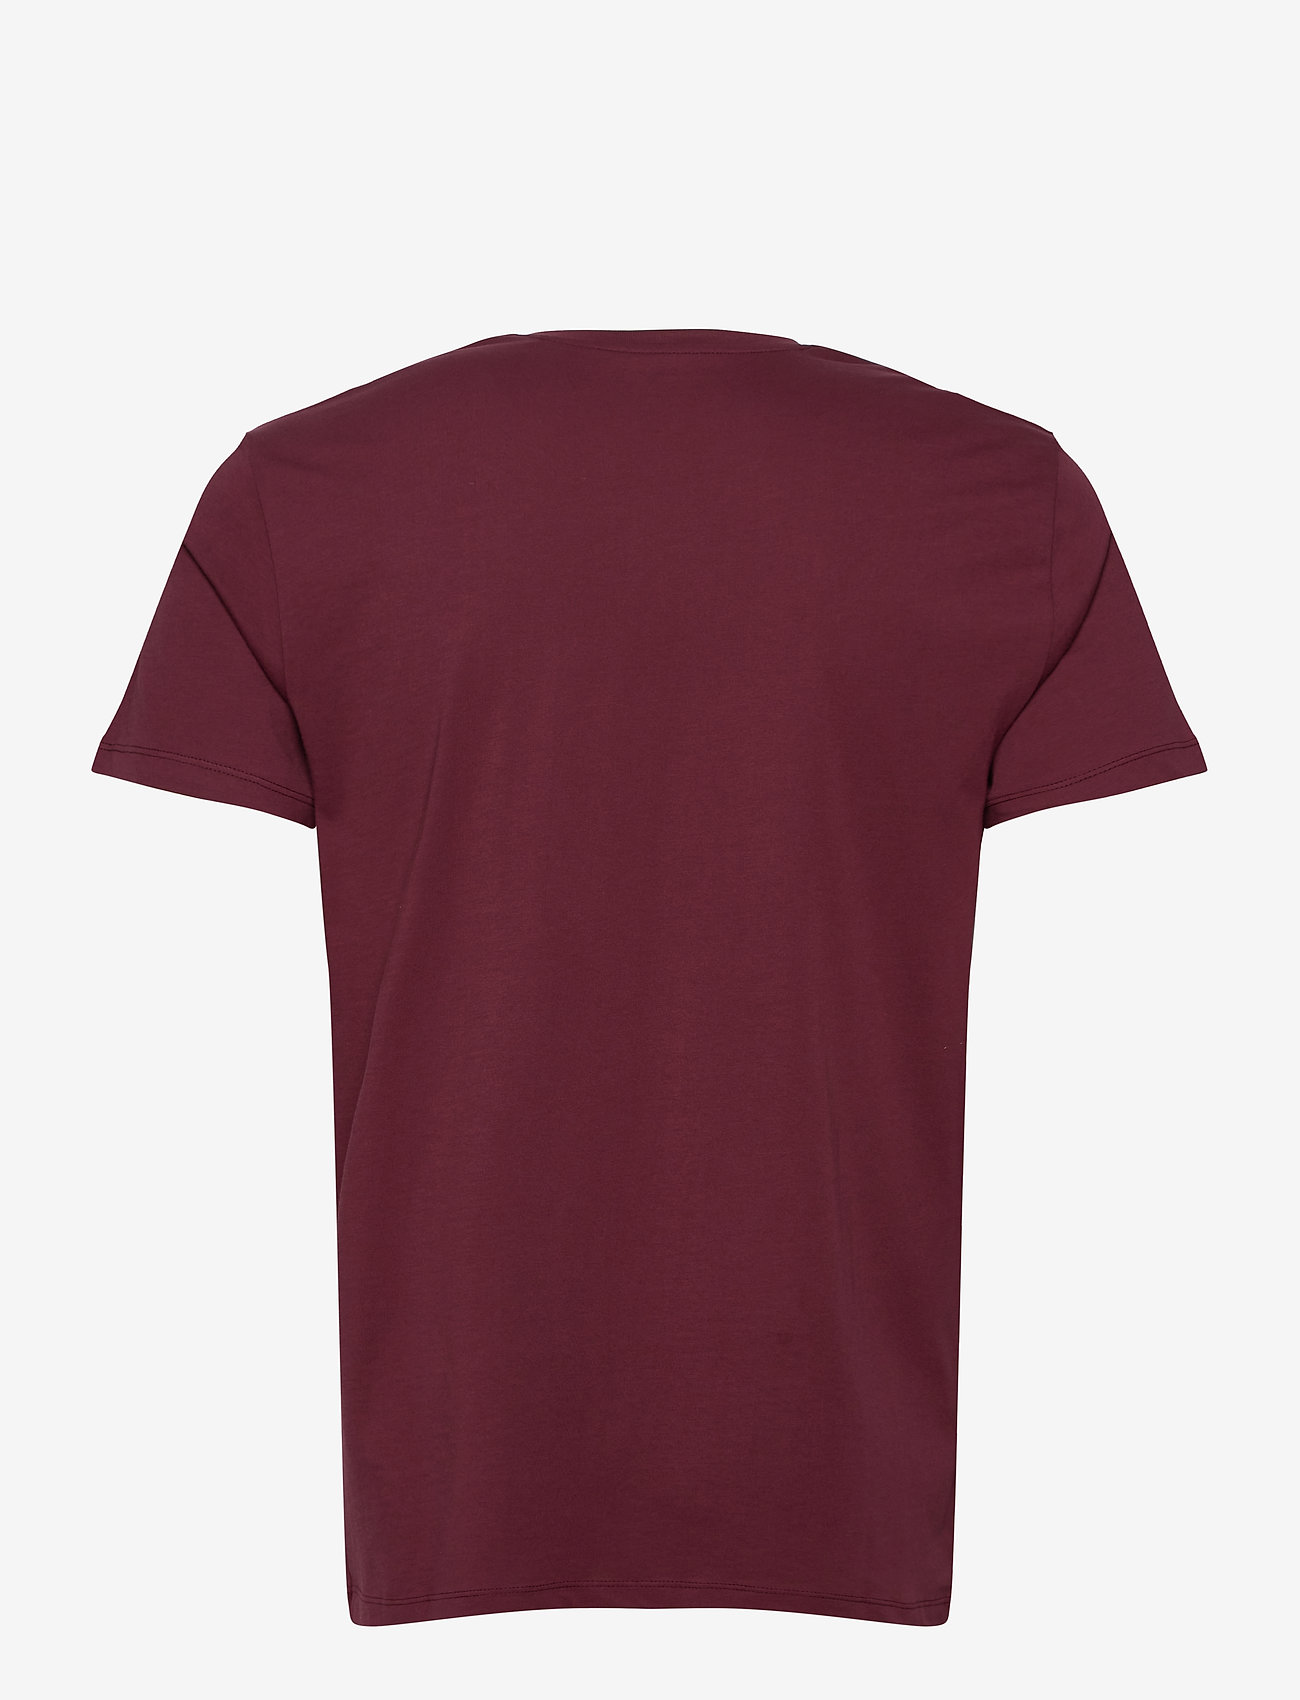 Esprit Casual - T-Shirts - basic t-shirts - bordeaux red - 1